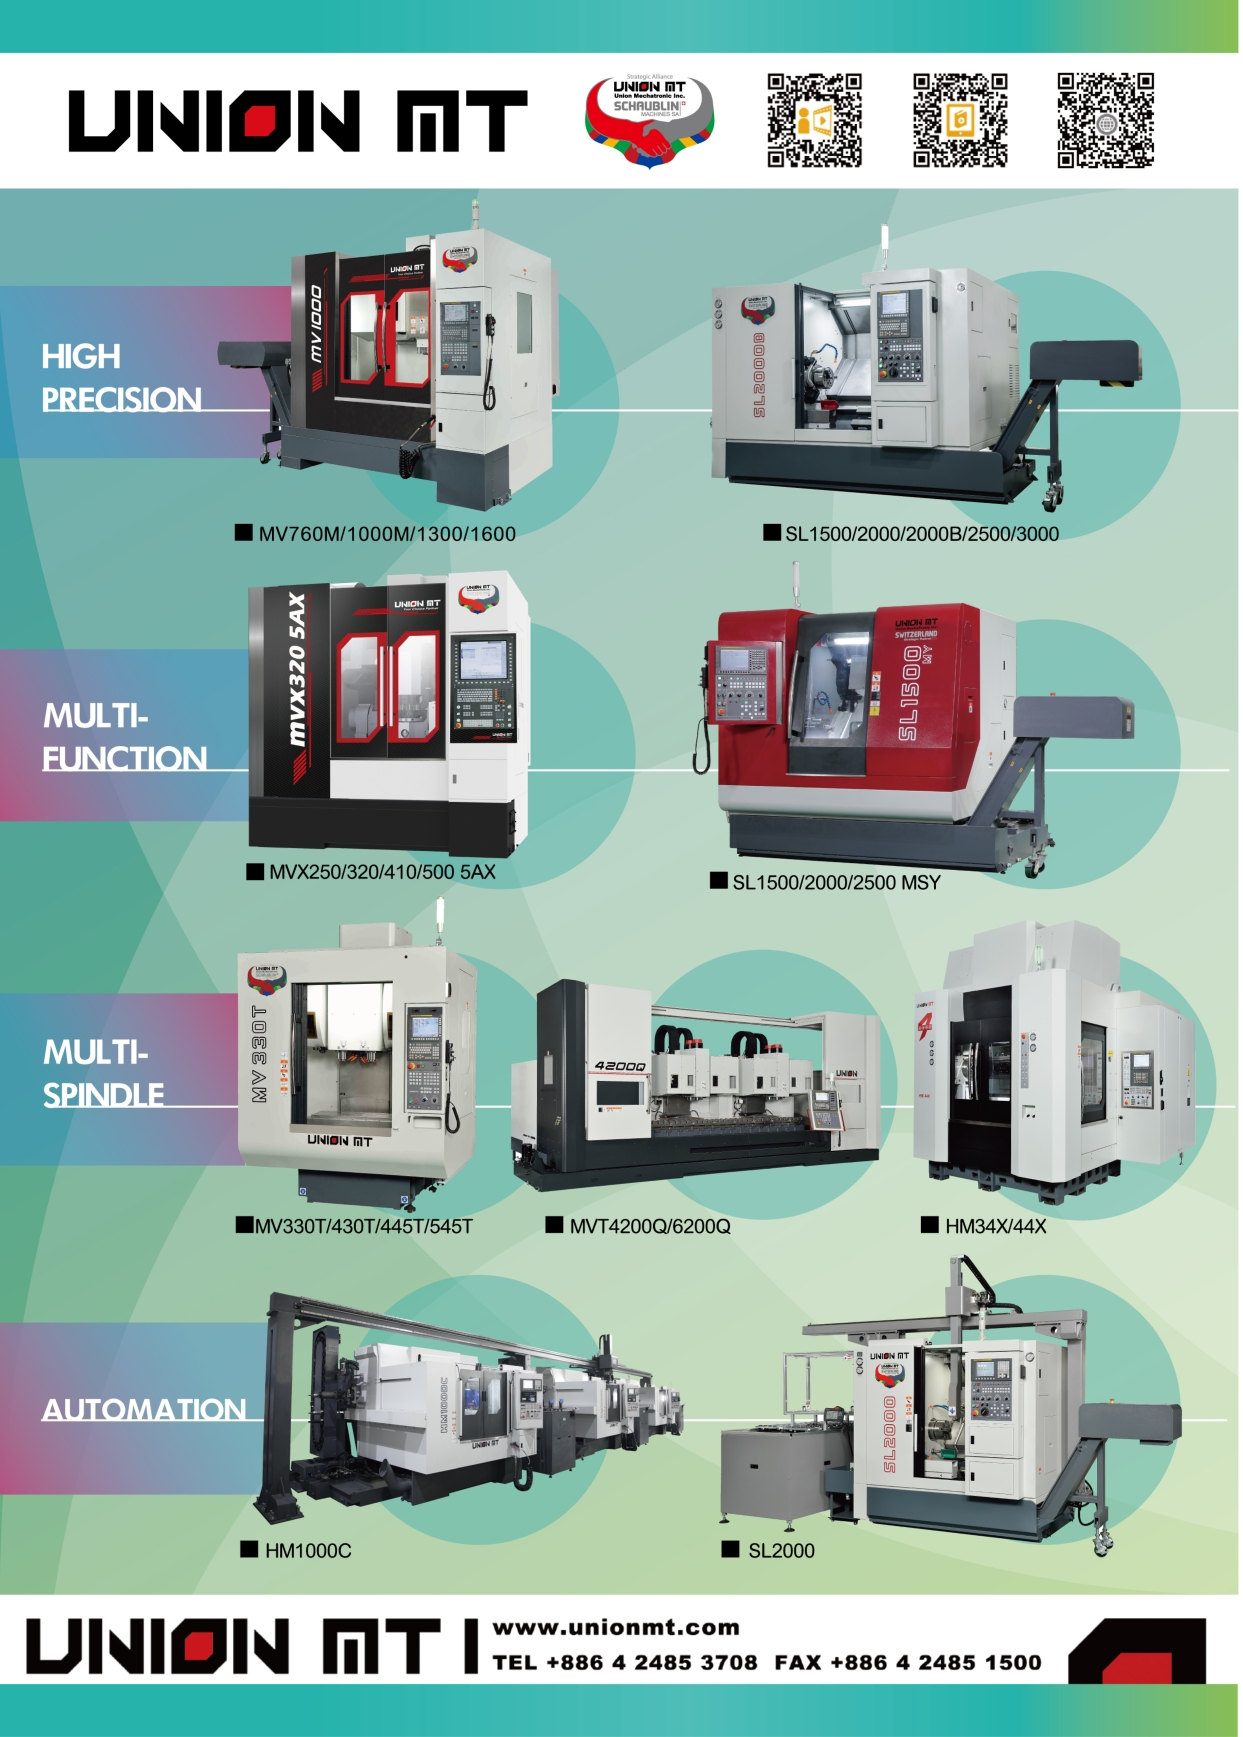 Who Makes Machinery in Taiwan UNION MECHATRONIC INC.